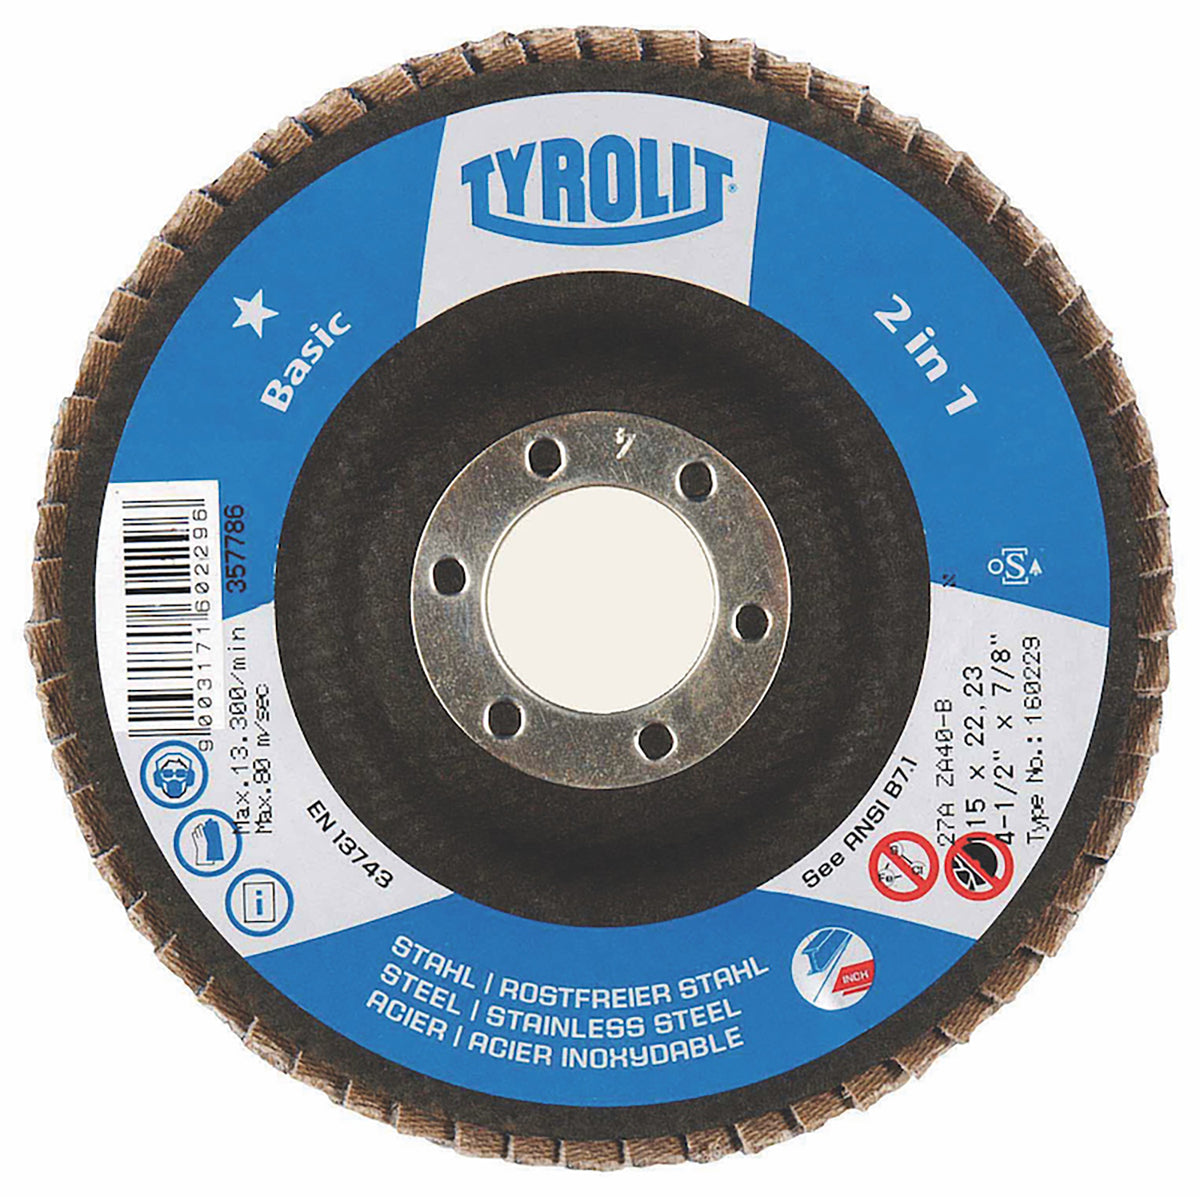 "10PC 4-1/2"" x 7/8"" Tyrolit Abrasives BASIC 2-in-1 Zirconia Flap Disc"